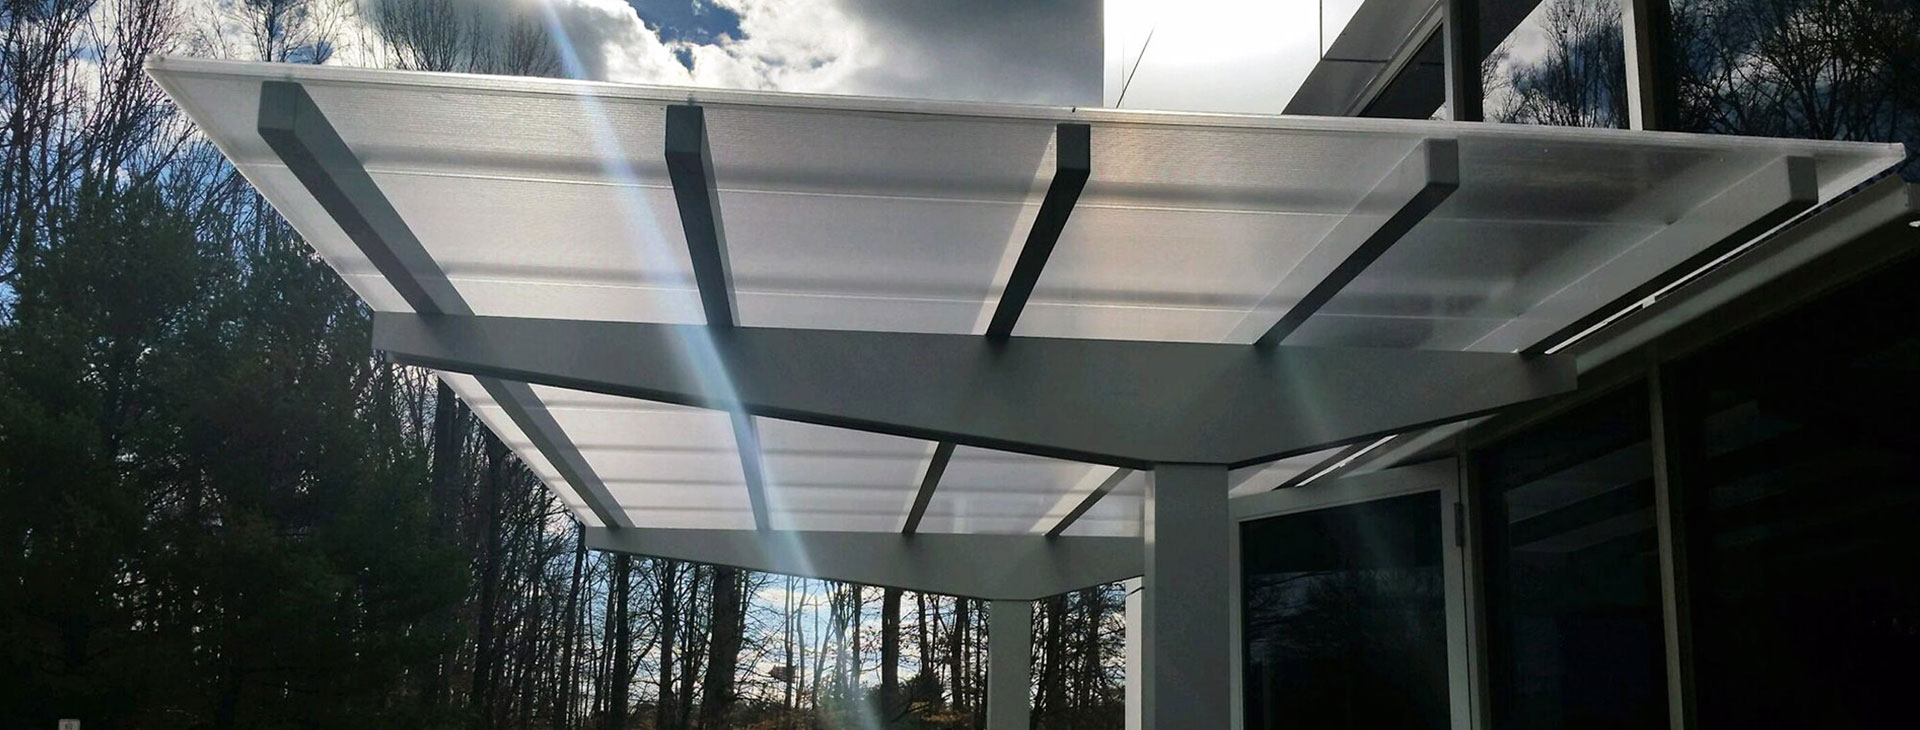 Aluminum Awnings, Aluminum Canopies, Custom Canopies and Store Awnings